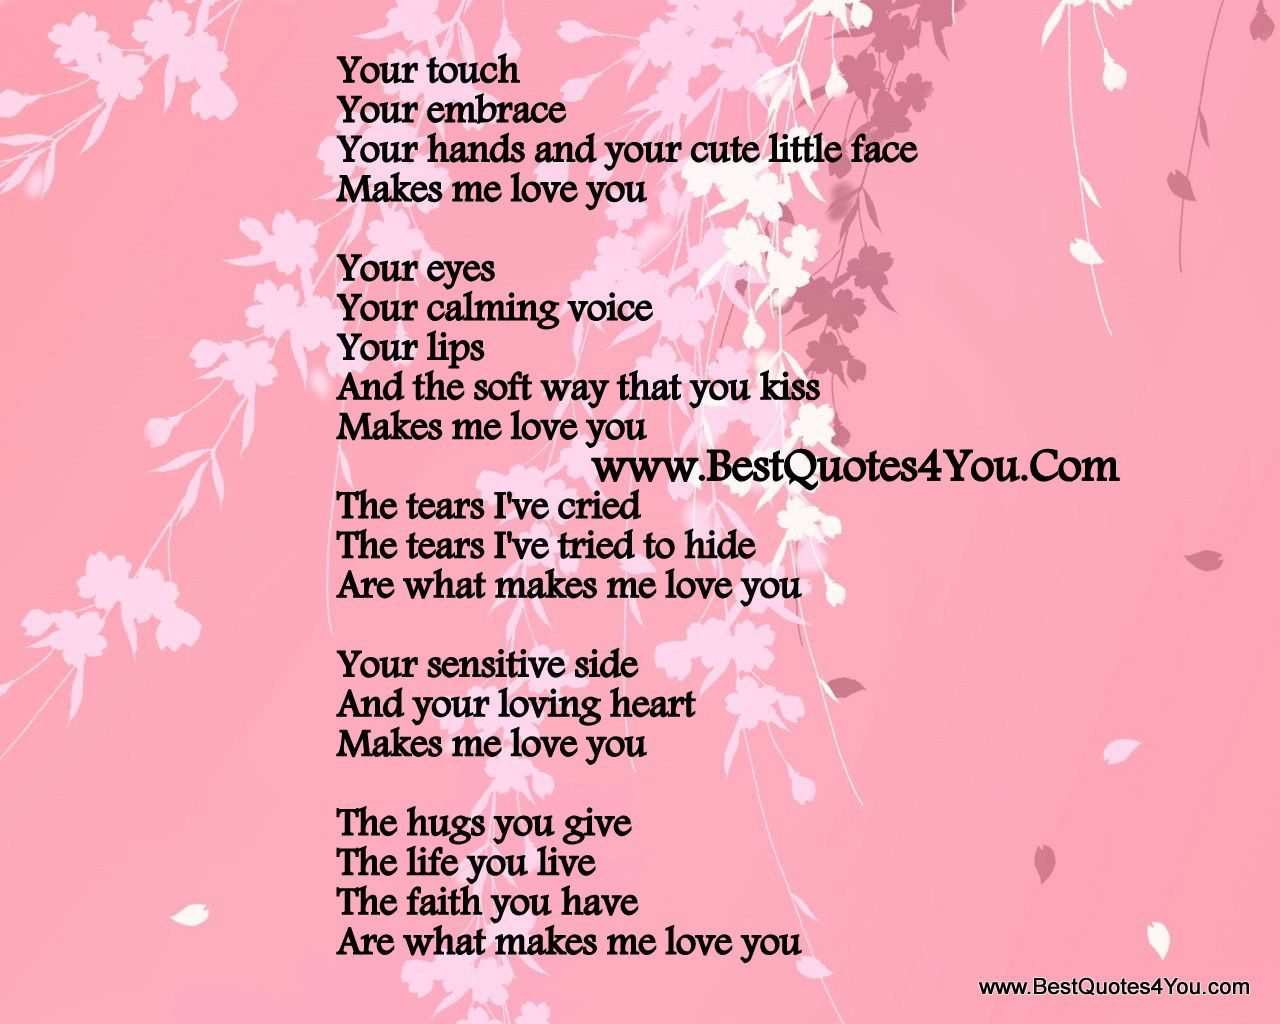 boyfriend+poems | Cute Love Quotes for Your Boyfriend